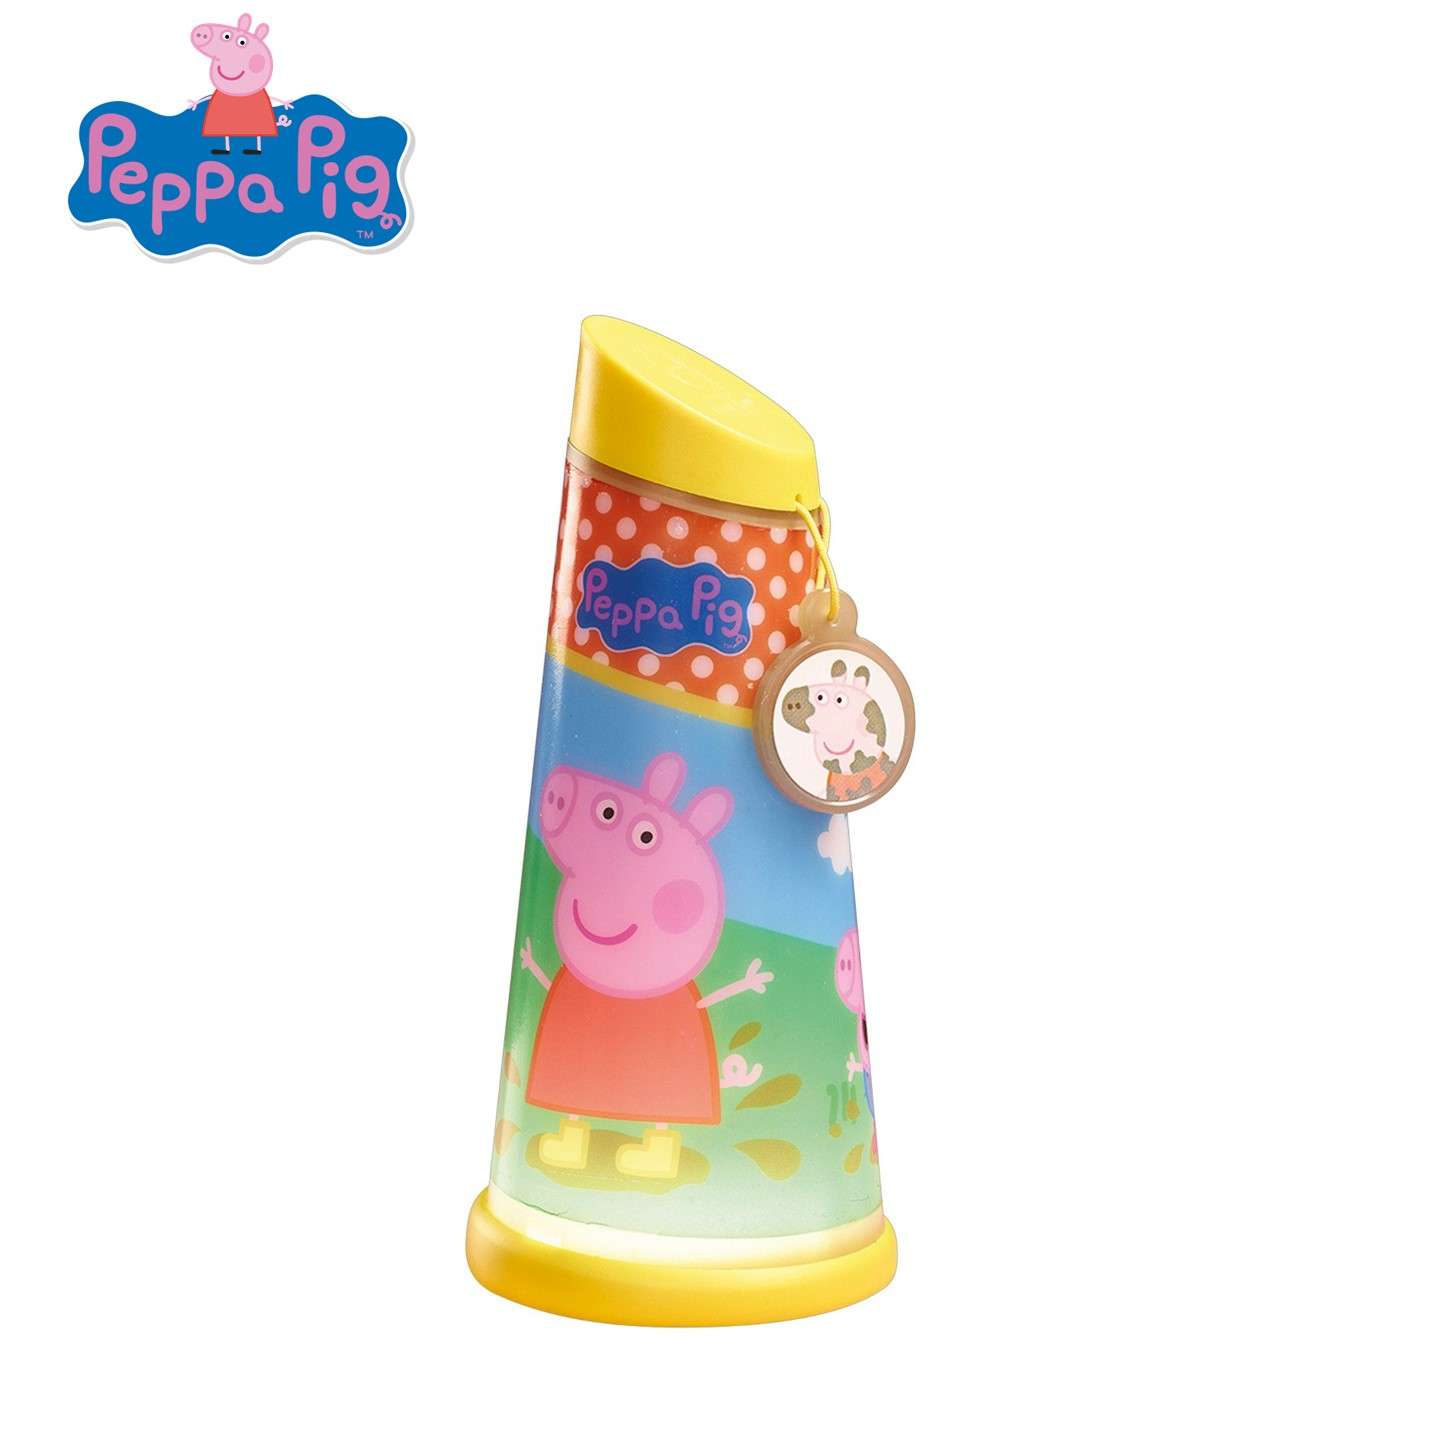 PW120274EPP000 Peppa Pig Tilt Torch (4)